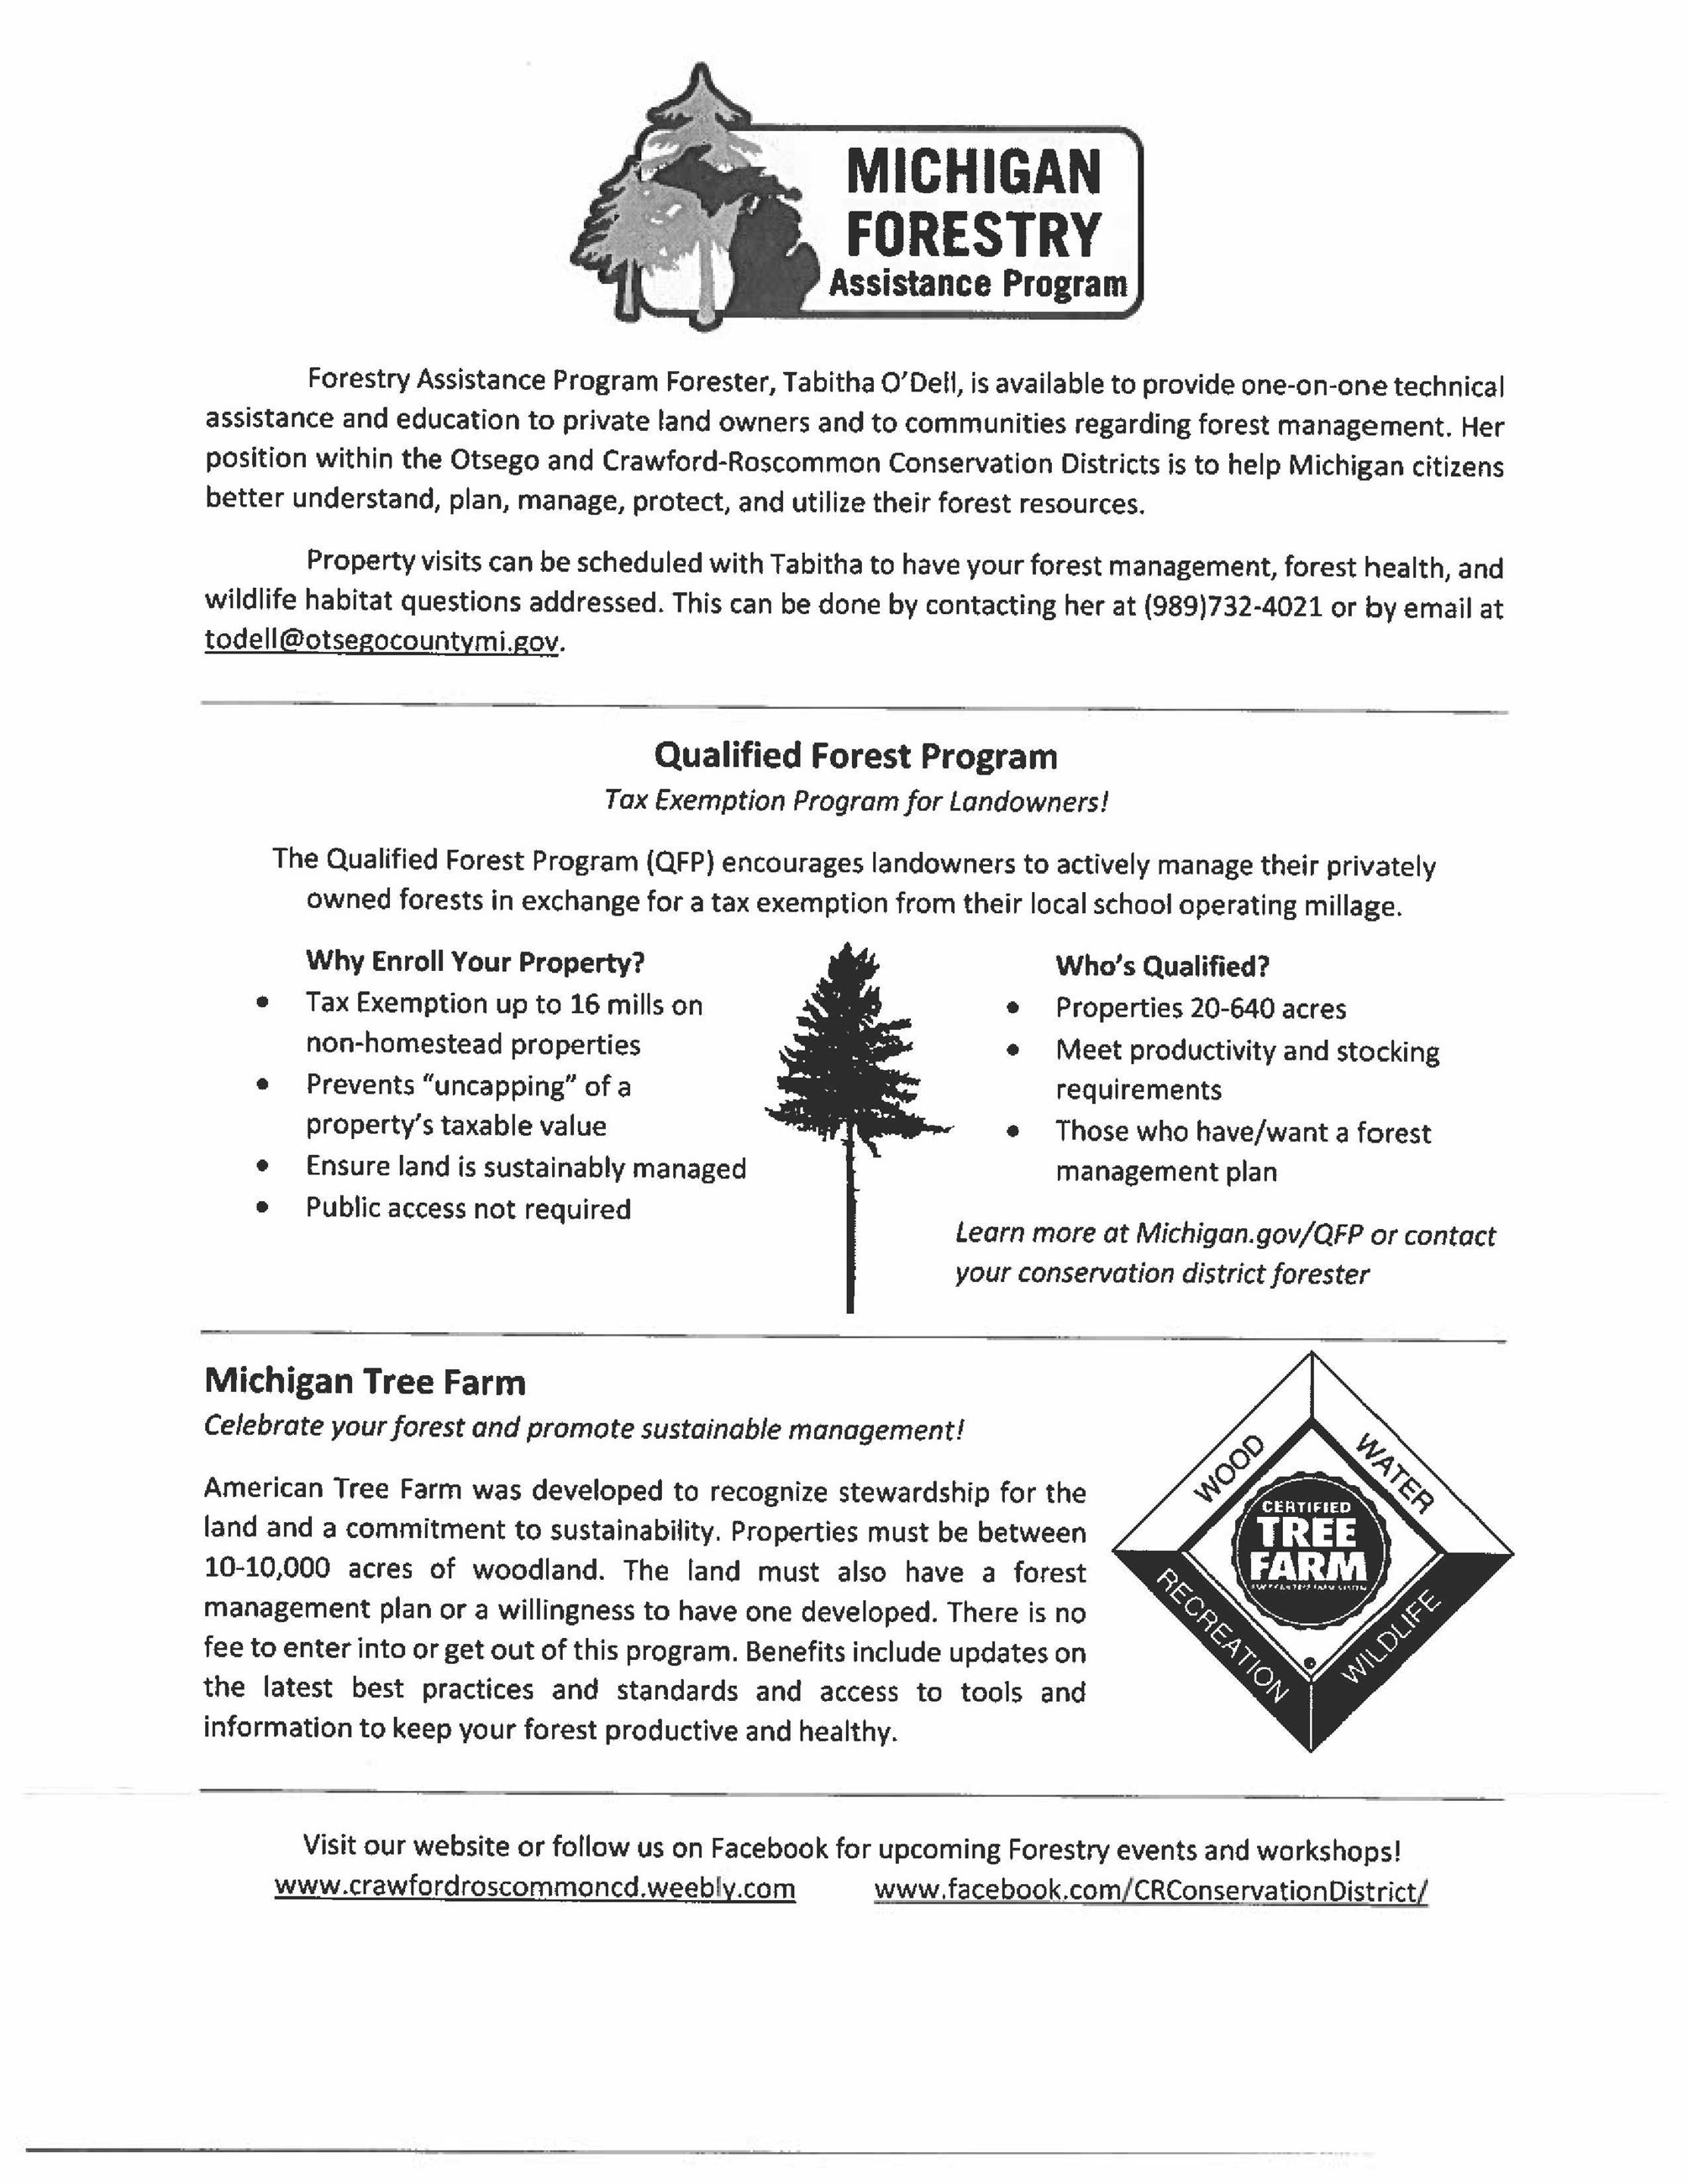 Michigan Forestry Assistance Program